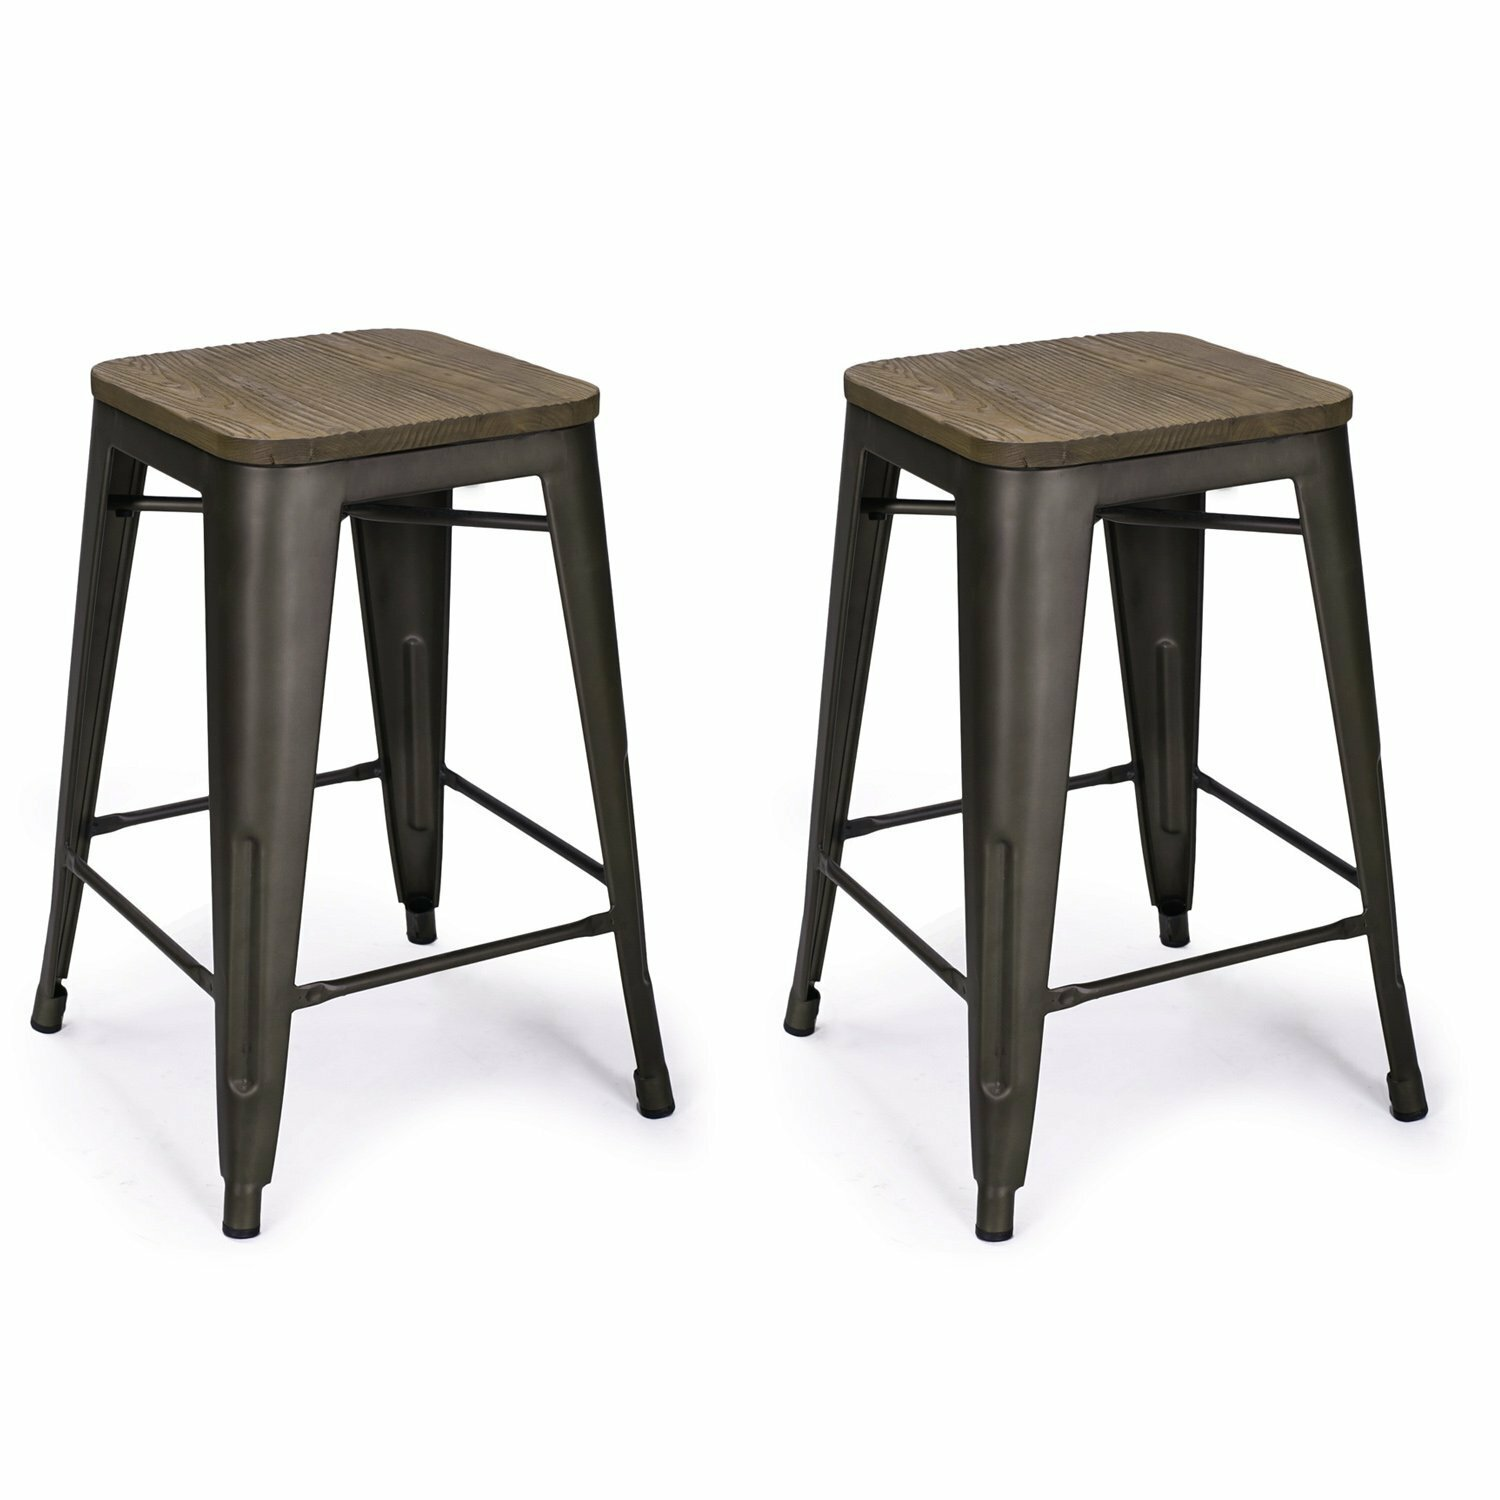 Adecotrading 24 Quot Bar Stool Amp Reviews Wayfair